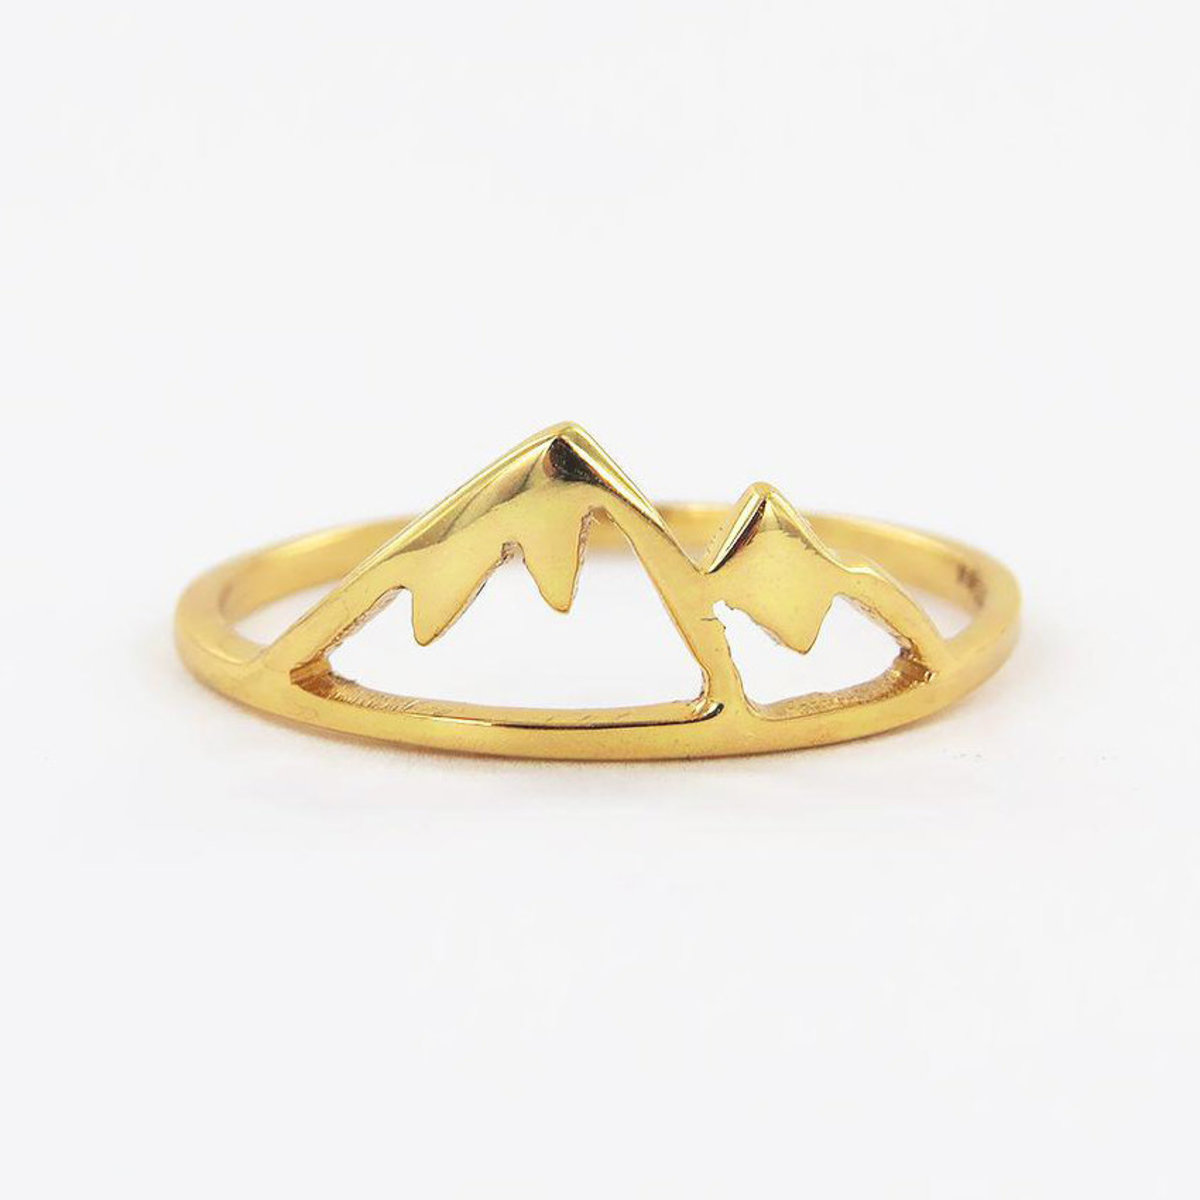 Aspen Mountain Design Ring (Size 5)